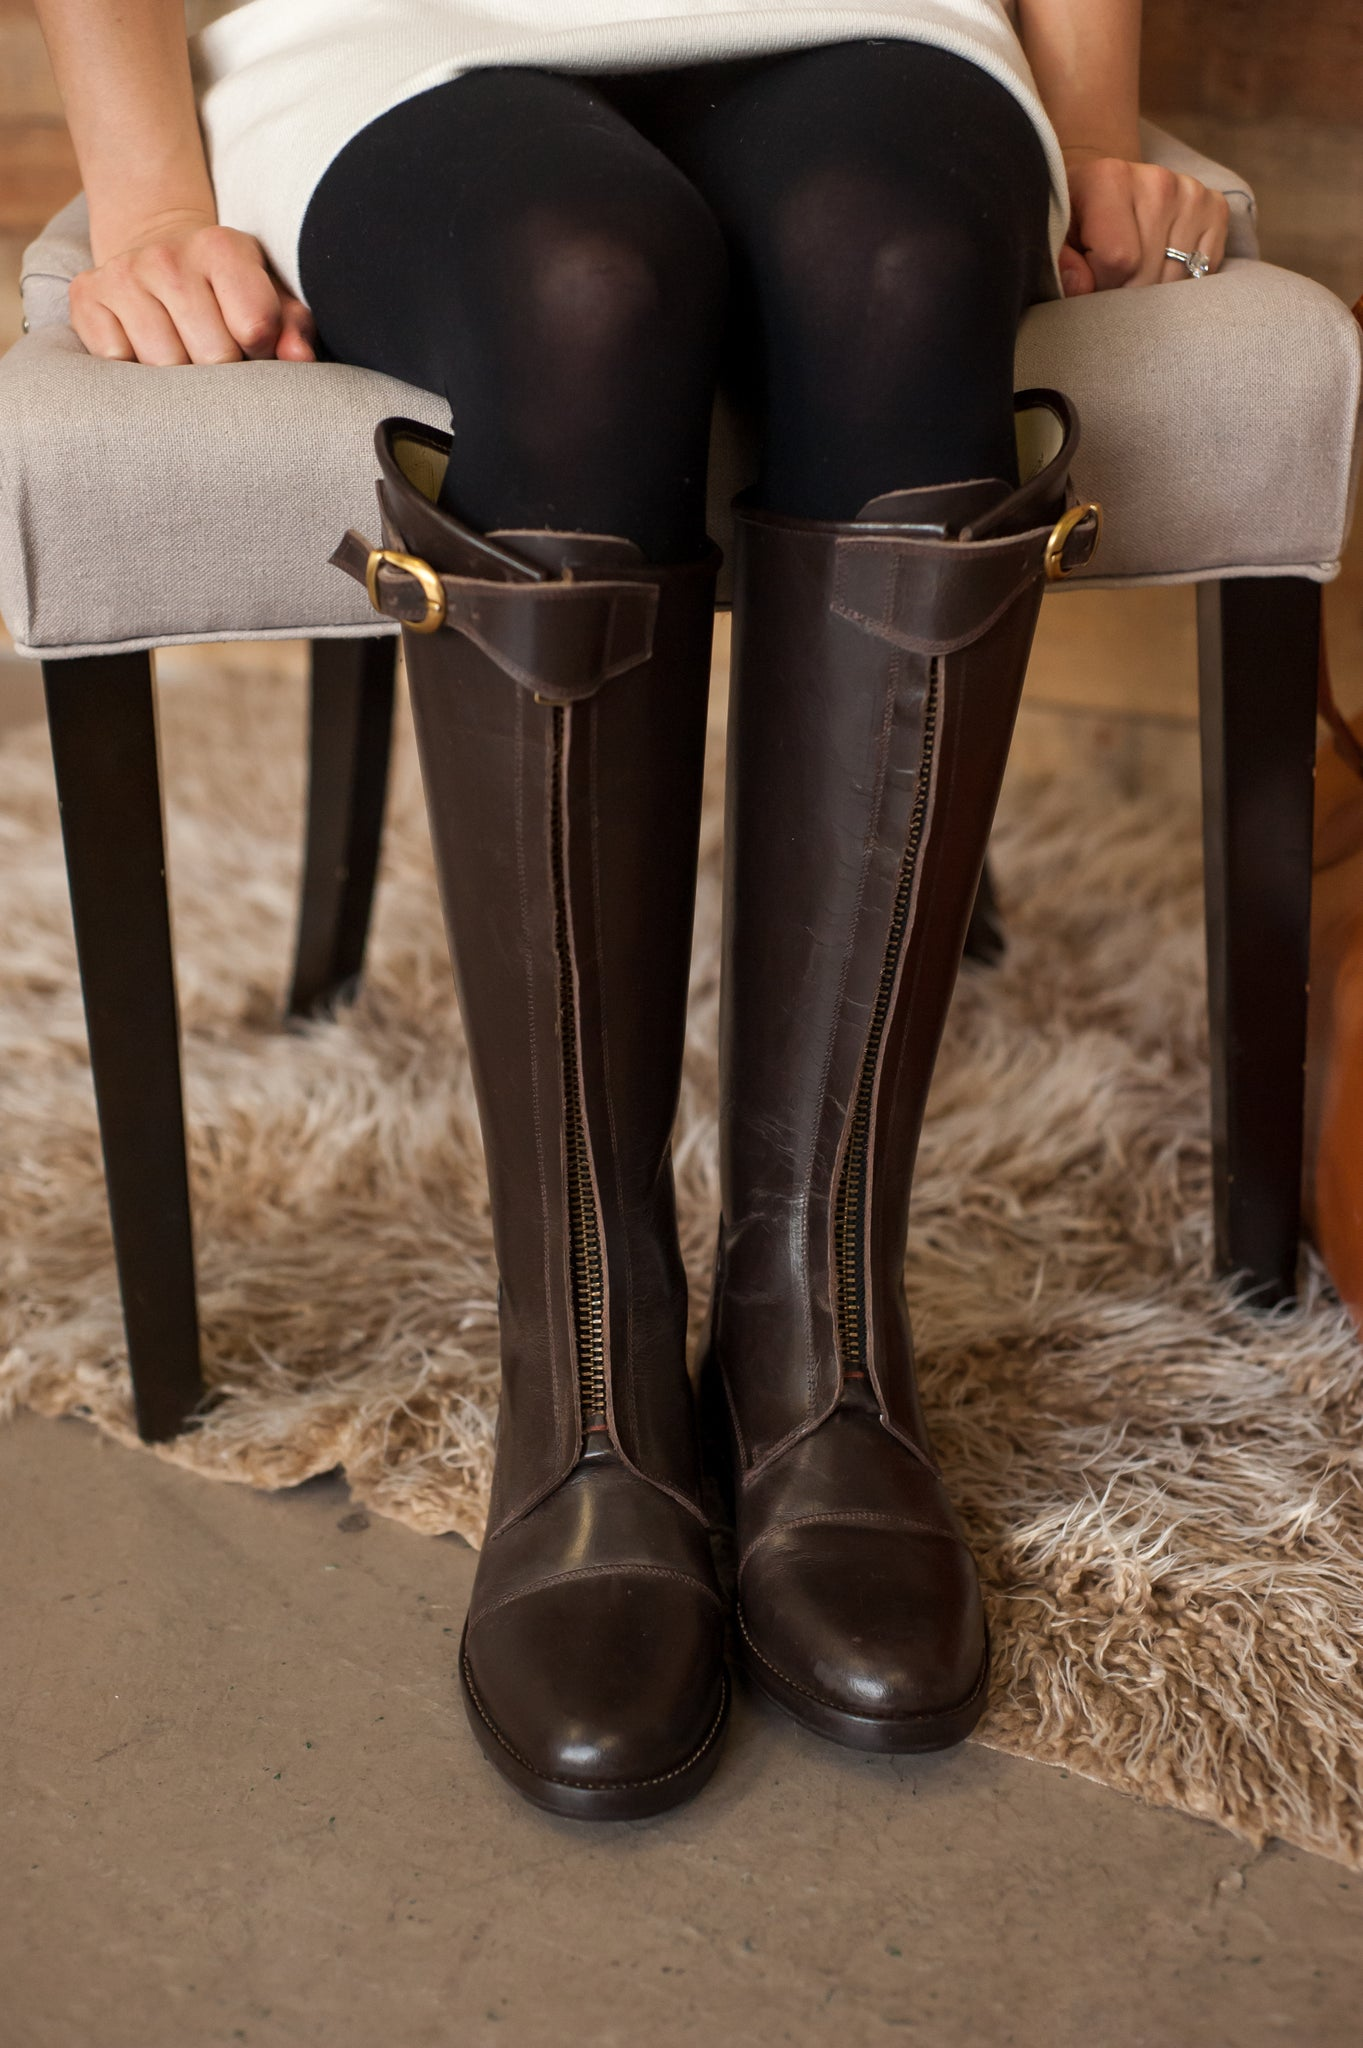 Polo boots in classic dark brown